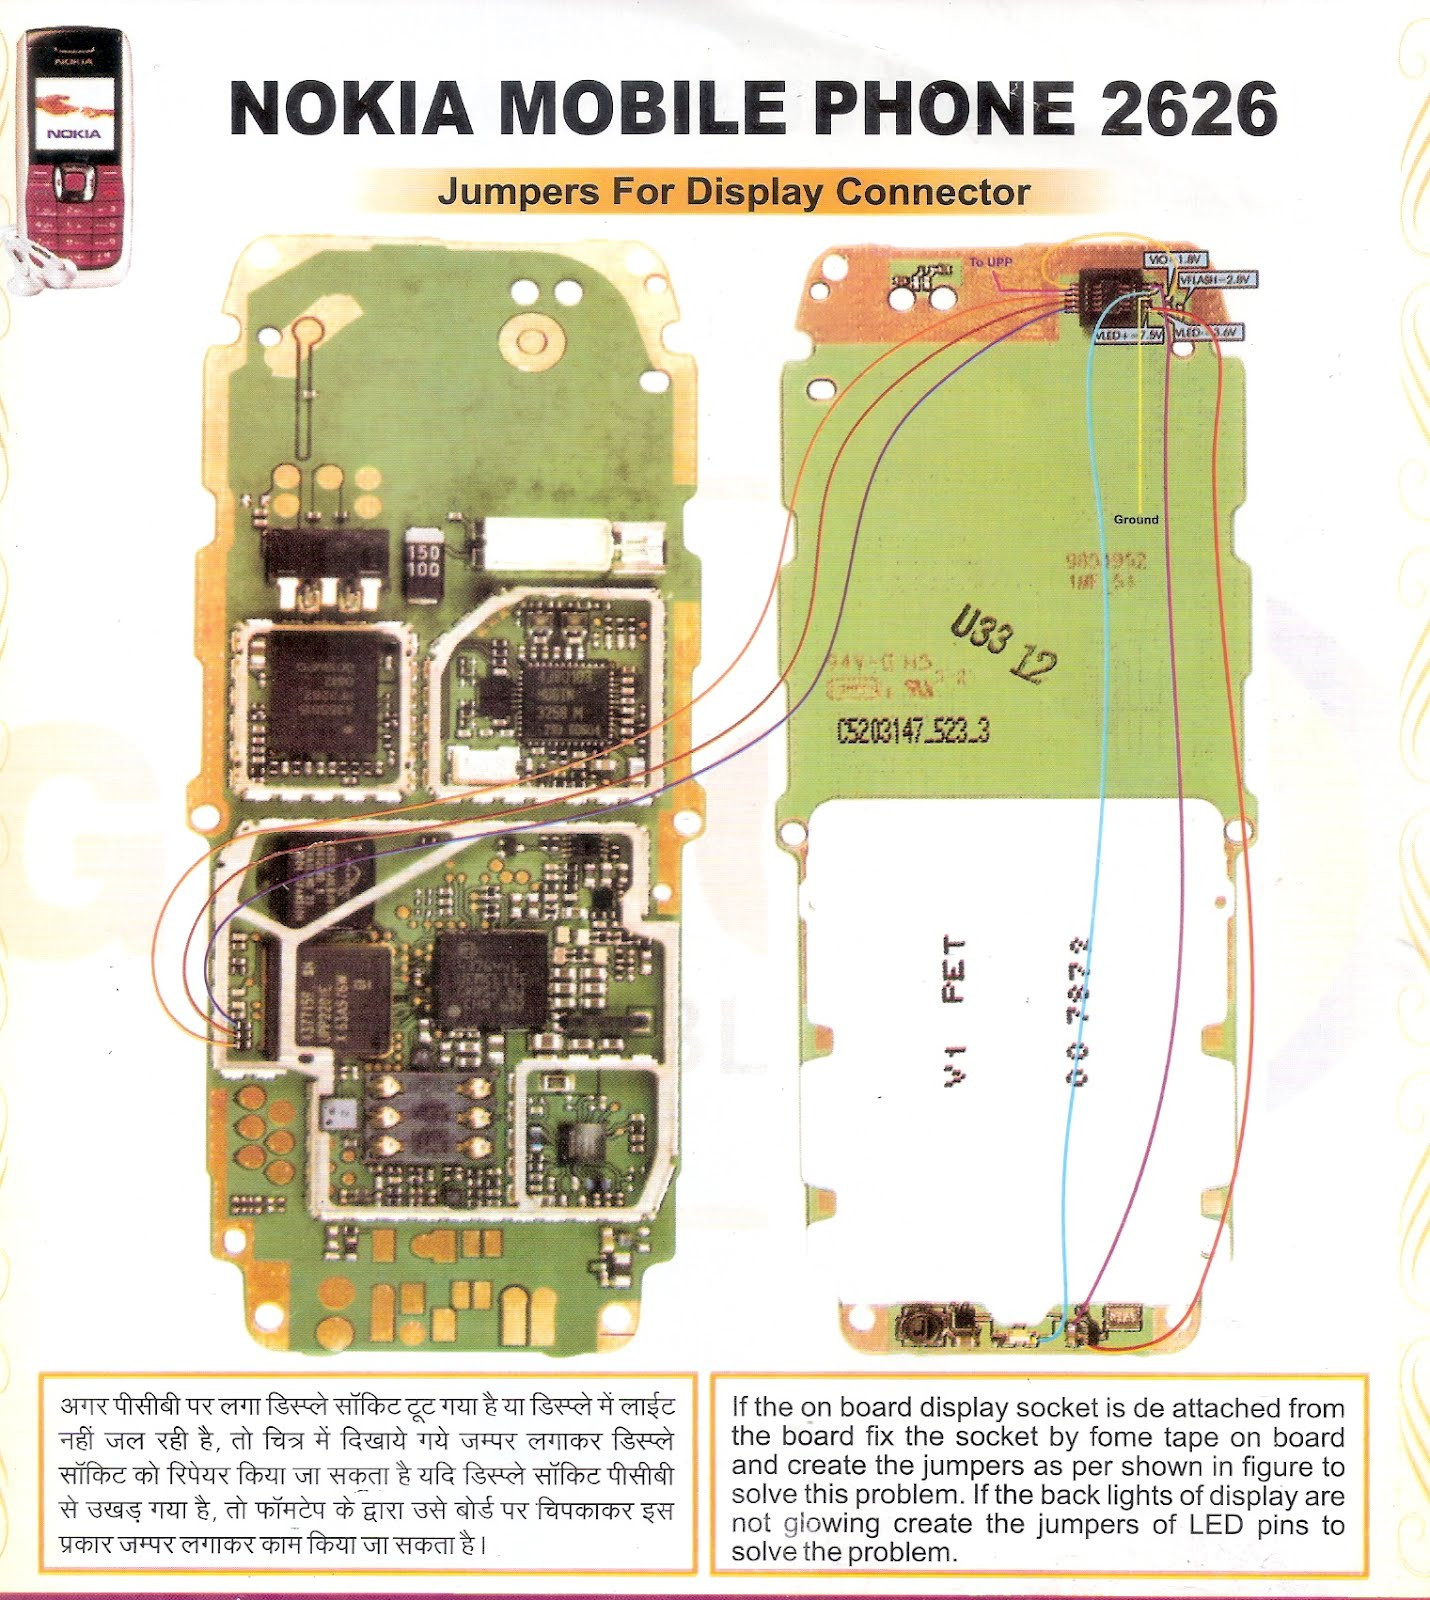 ASHU MOBIL REAPER NOKIA 2626 JUMPER FOR DISPLAY CONNECTOR